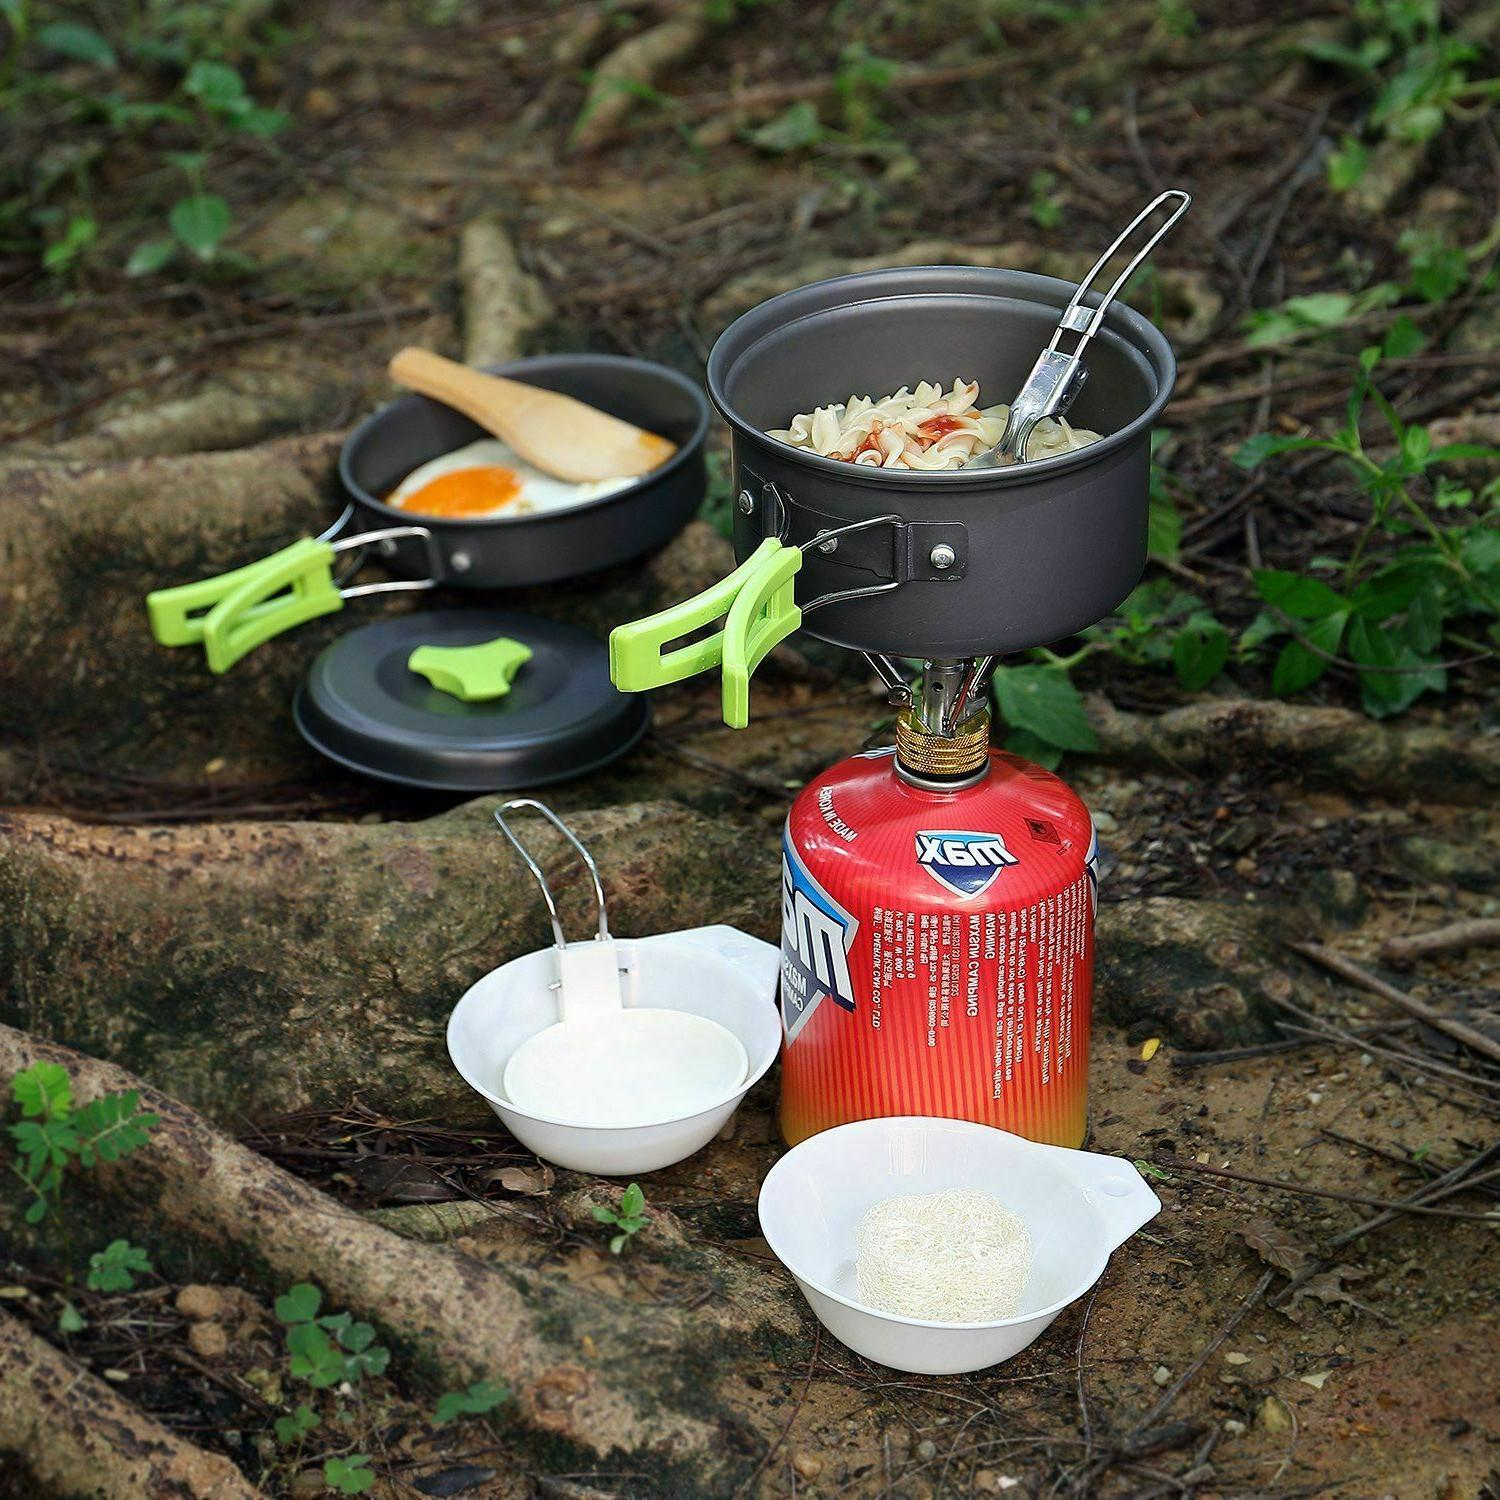 Survival Camping Cooking Gear Bug Out Essentials Disaster Survival